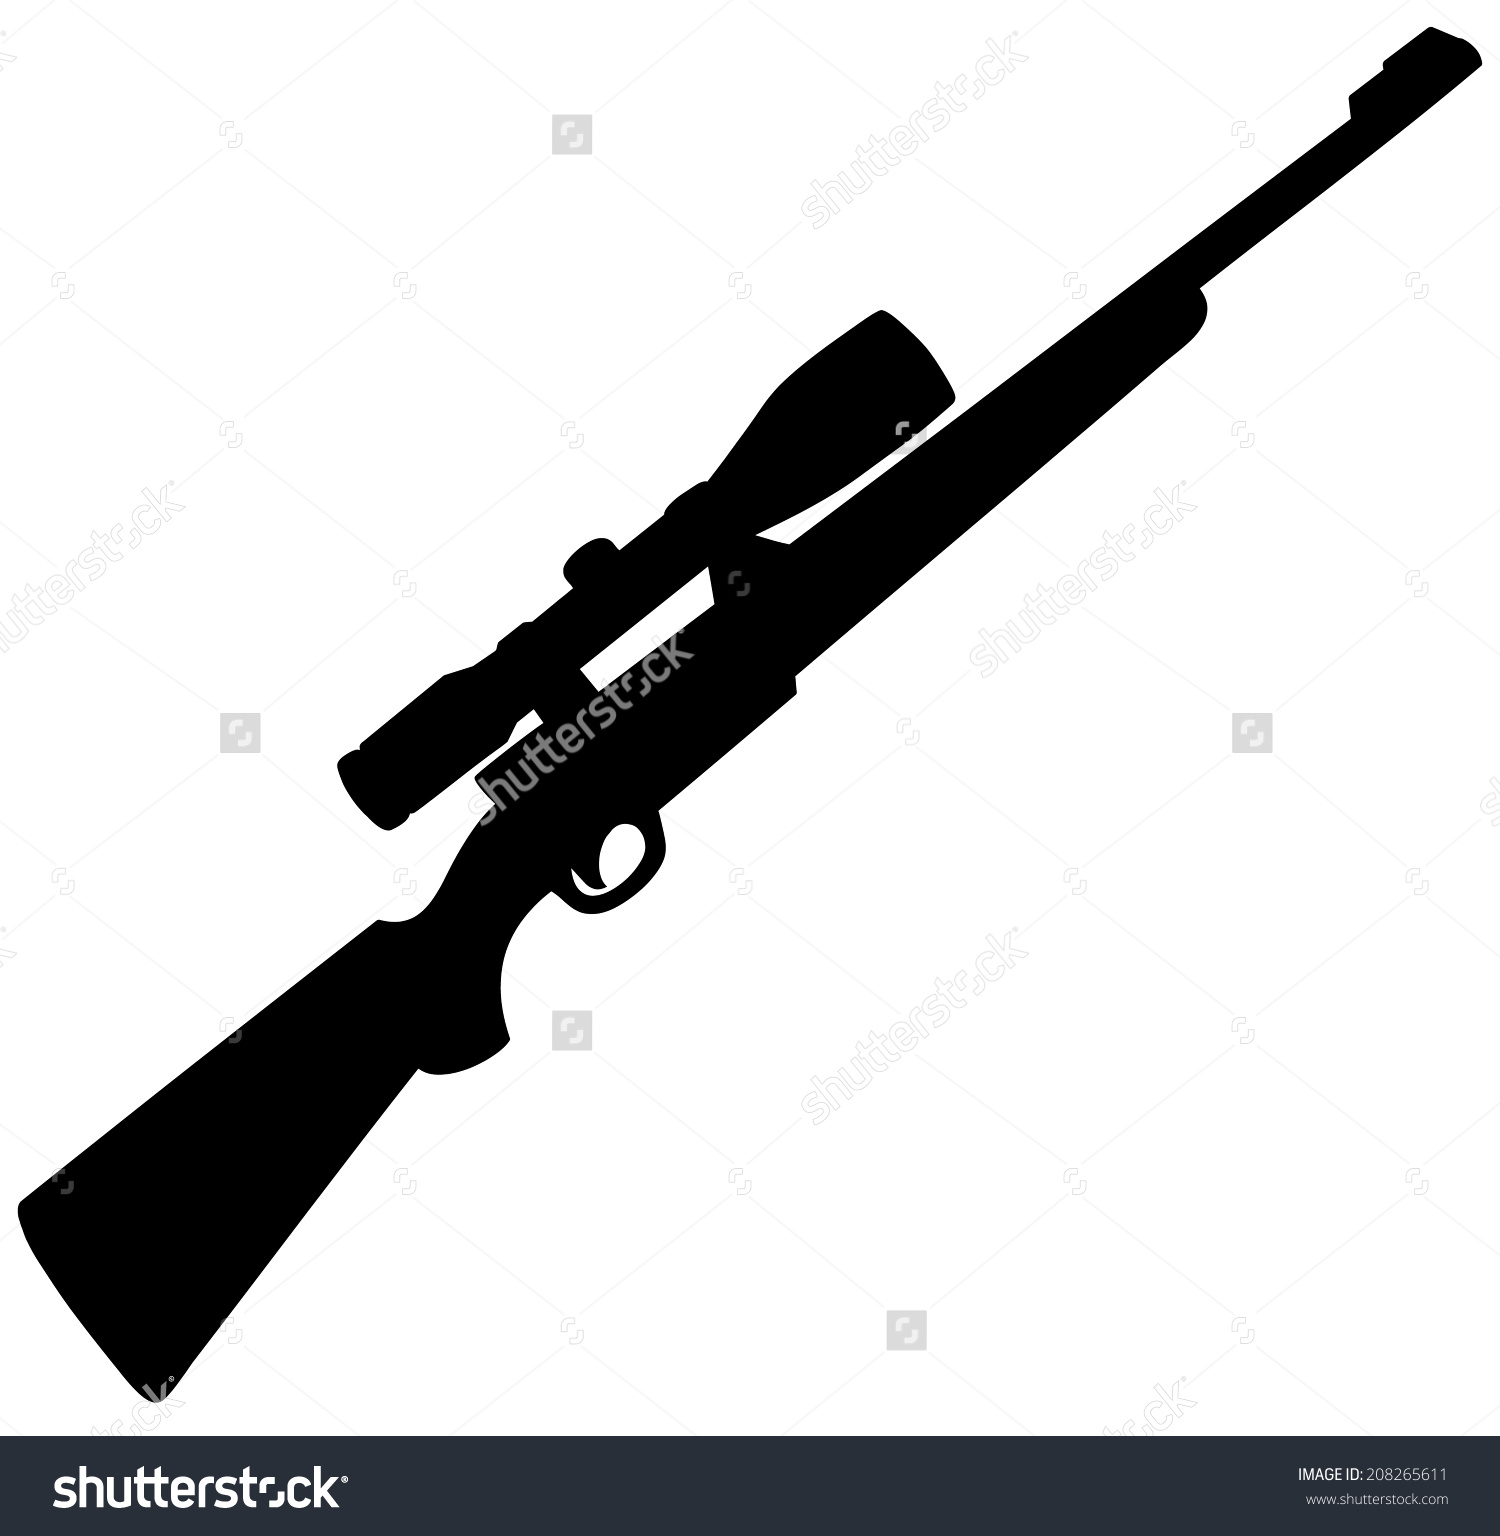 Hunting clipart hunting rifle #9